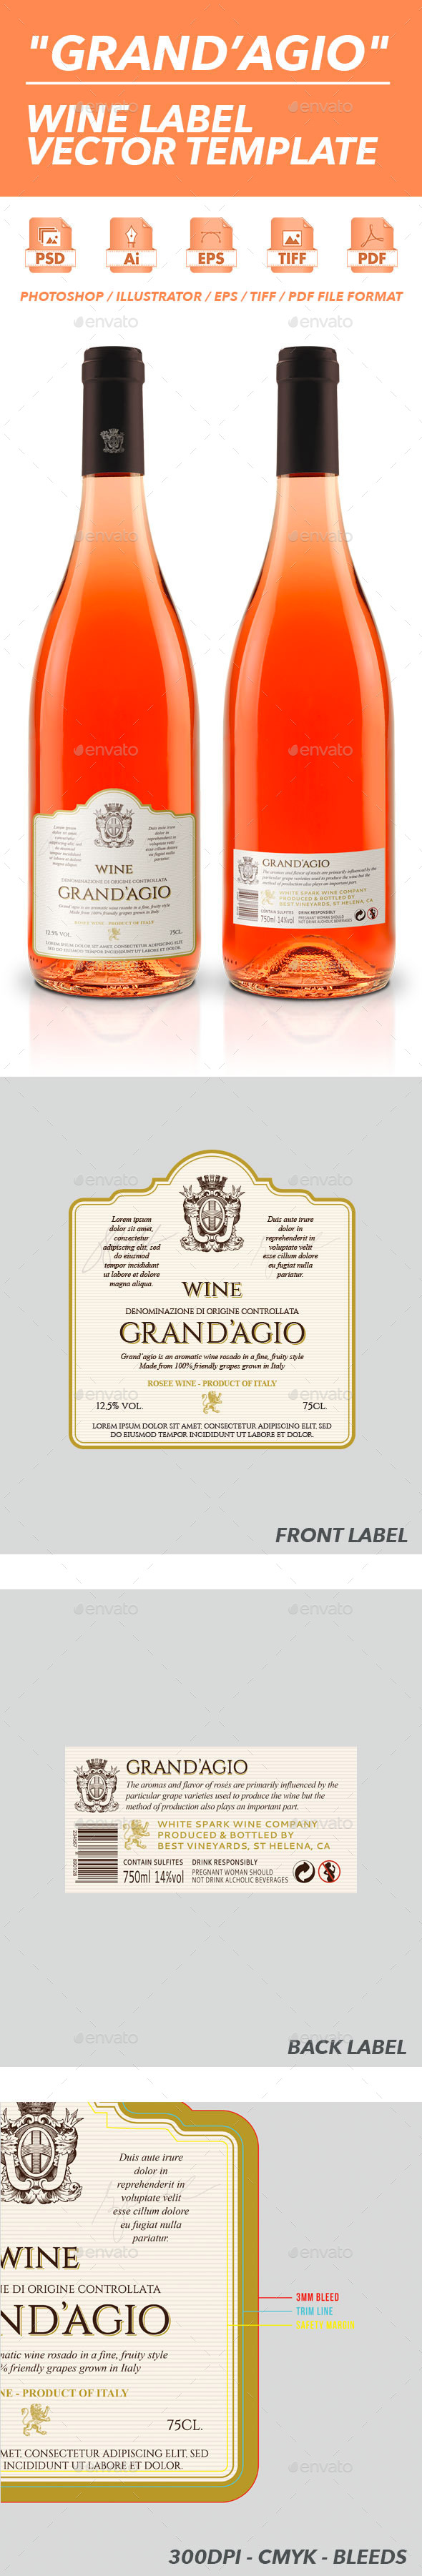 Grand'Agio - Wine Label Vector Template - Packaging Print Templates